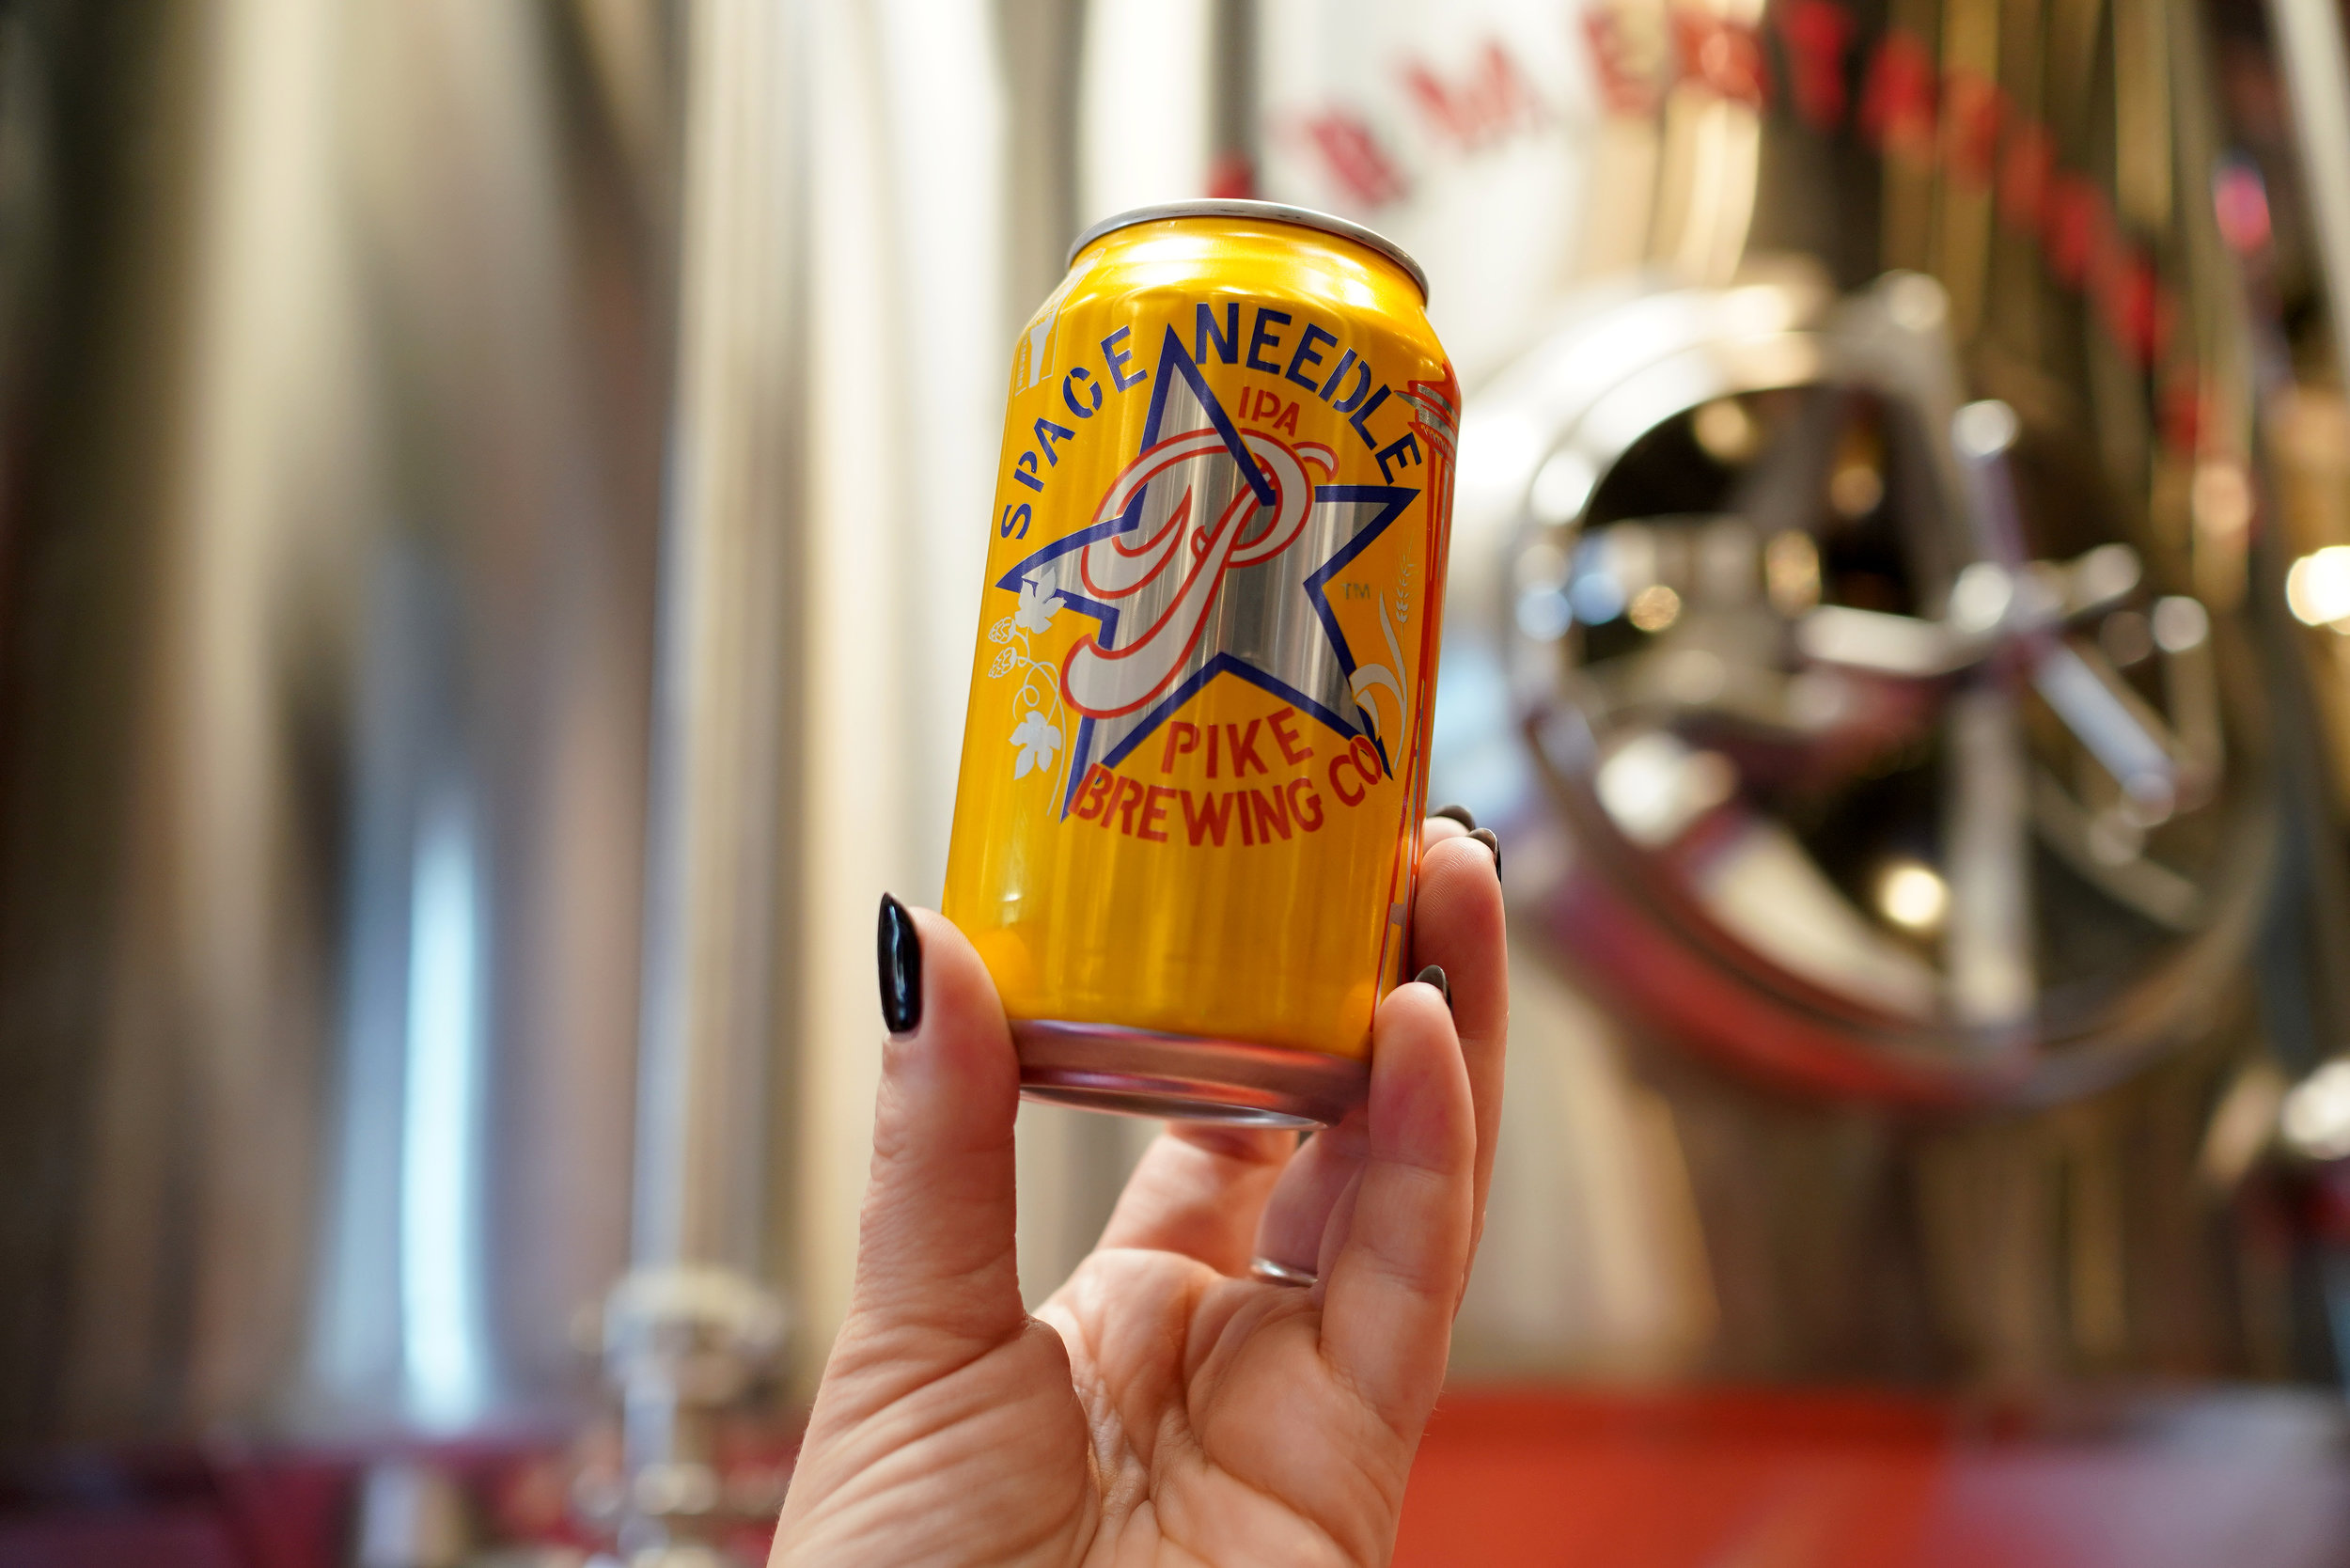 Pike Space Needle IPA in front of brewery tanks